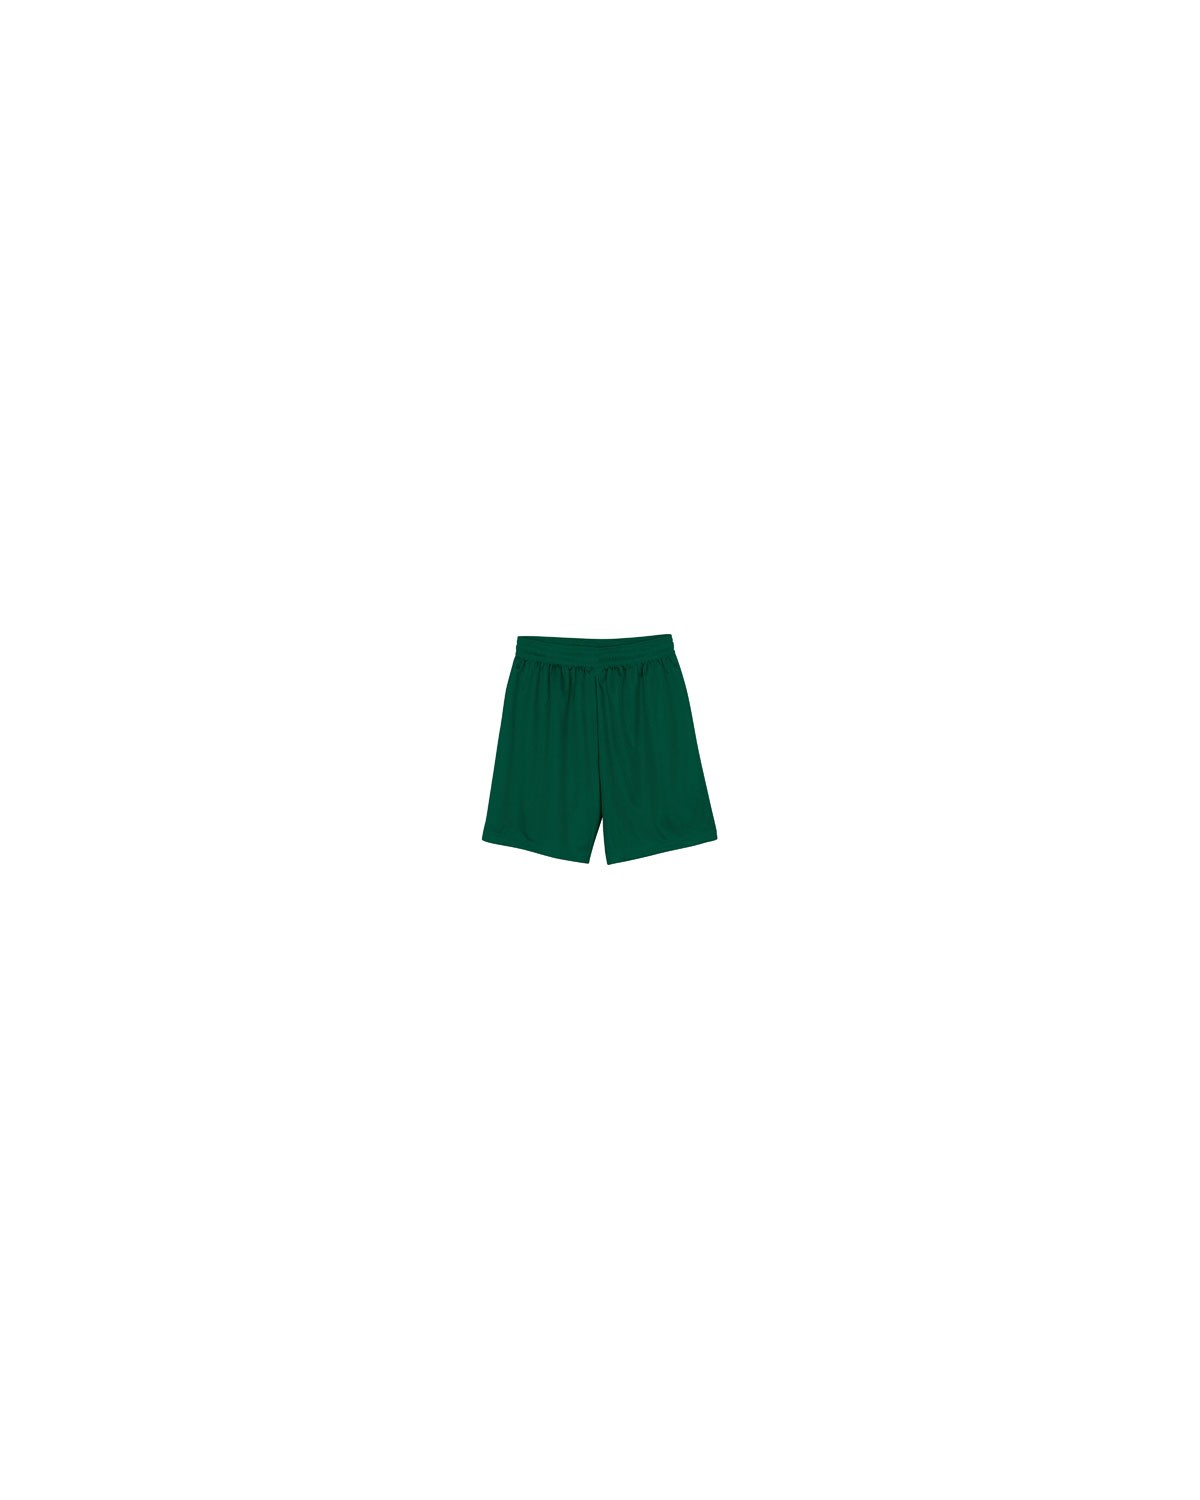 N5184 A4 Drop Ship FOREST GREEN